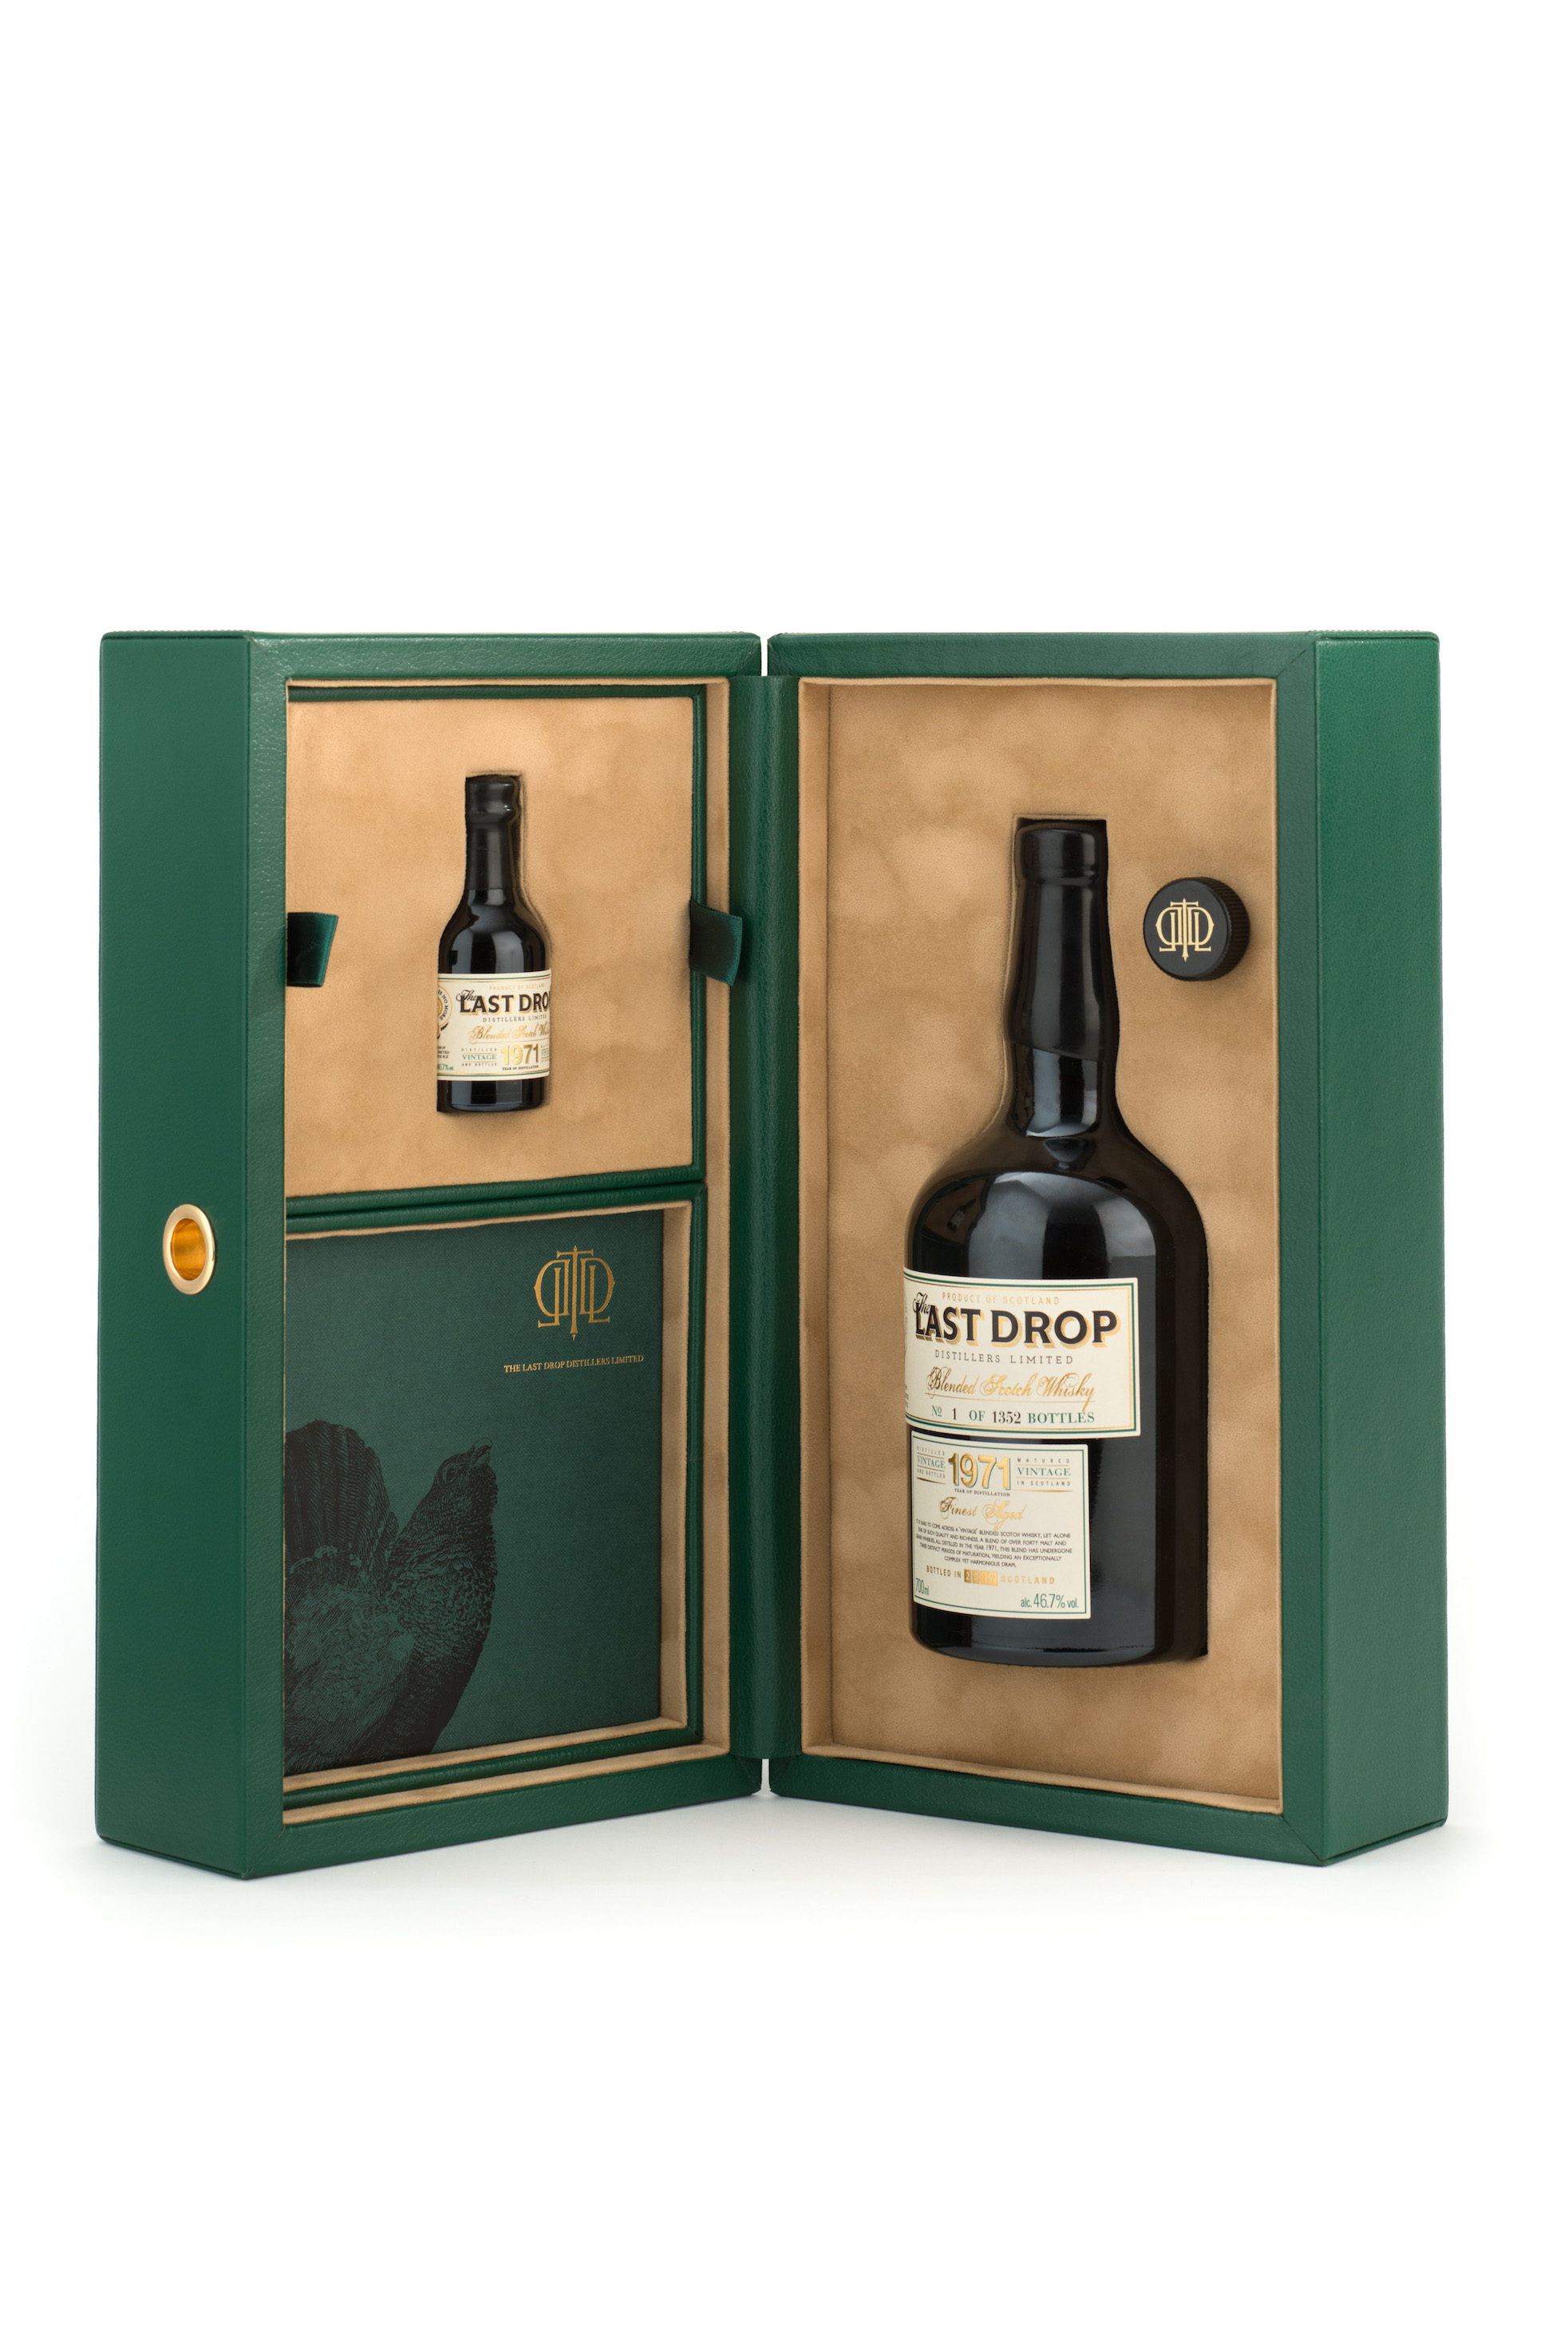 The-Last-Drop-1971-Blended-Scotch-Whisky-box-opened.jpg